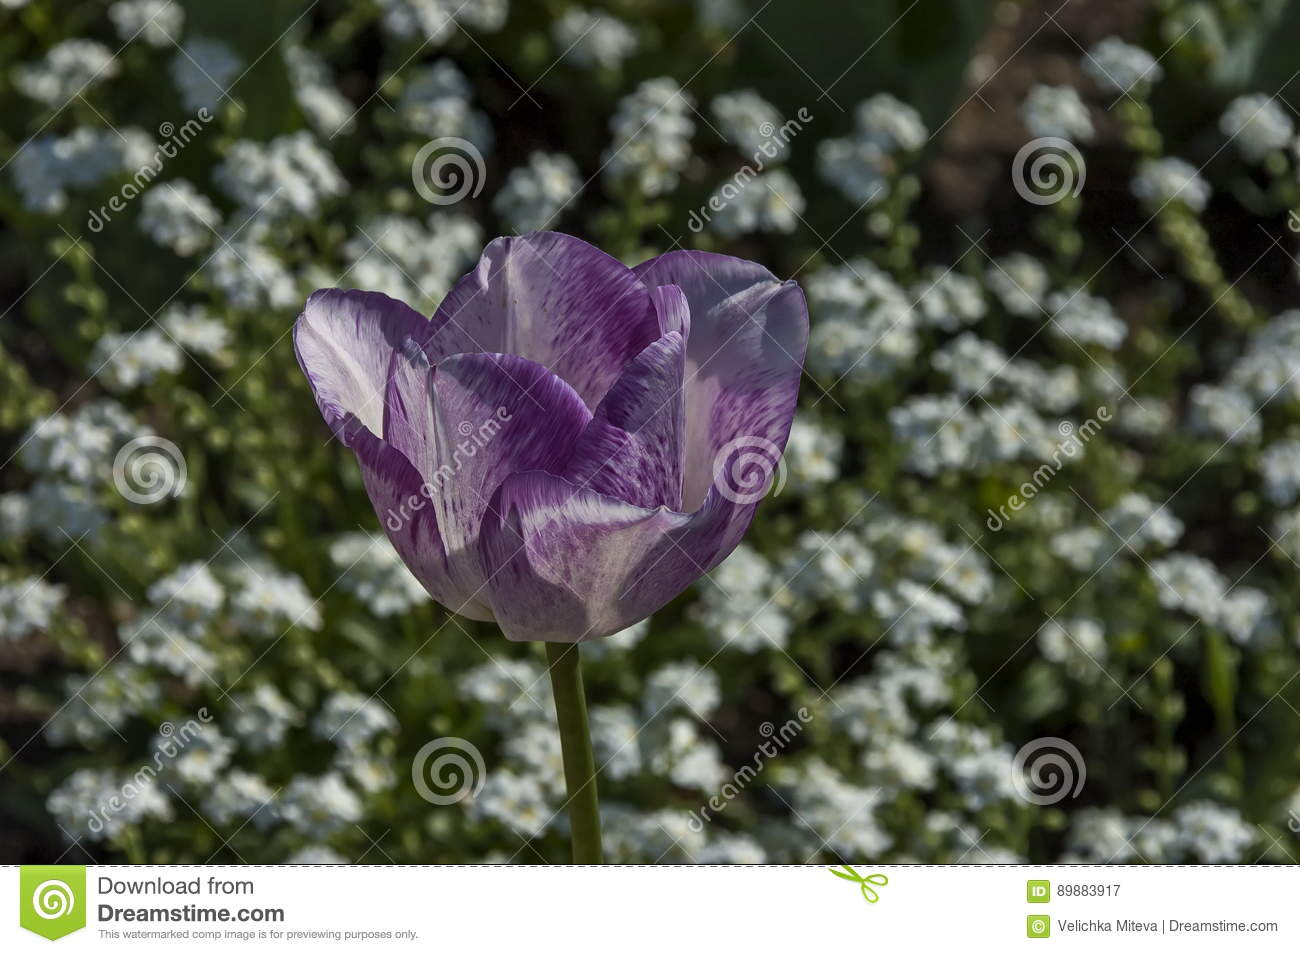 The Blooming Variegated Tulips And White Forget Me Not Flowers